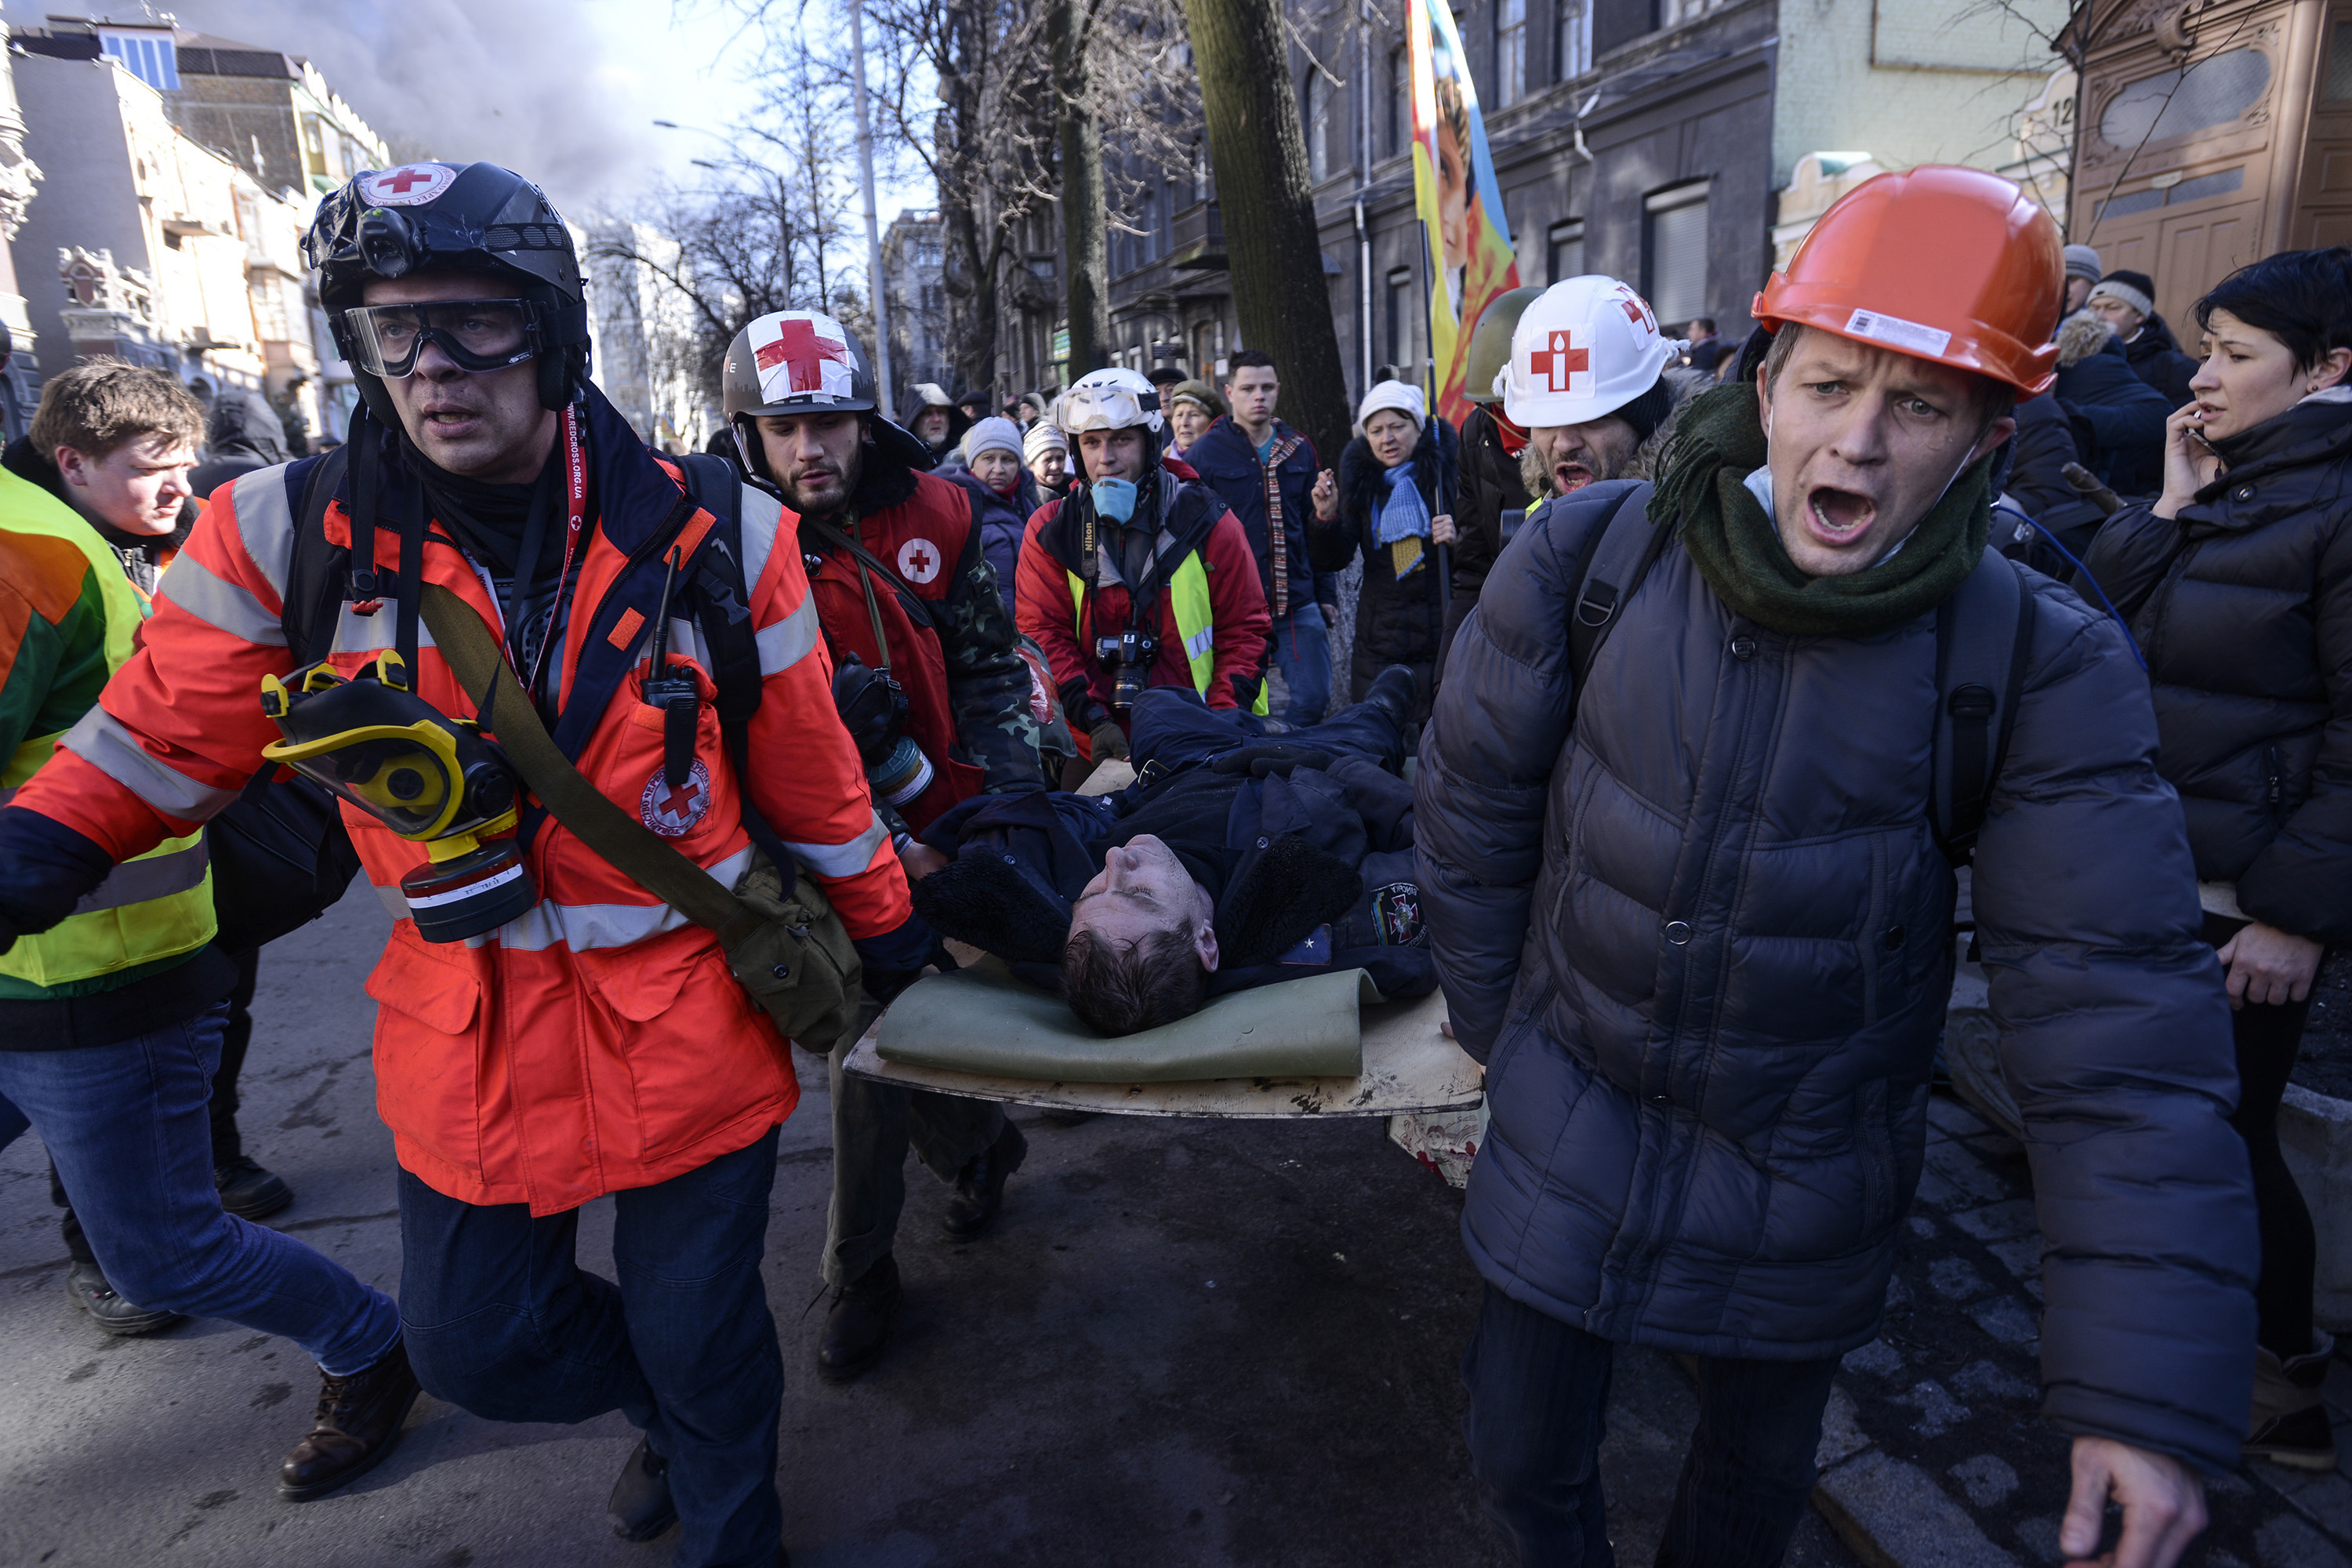 An Interior Ministry member, who was injured during clashes with anti-government protesters, is transported on a stretcher in Kiev.